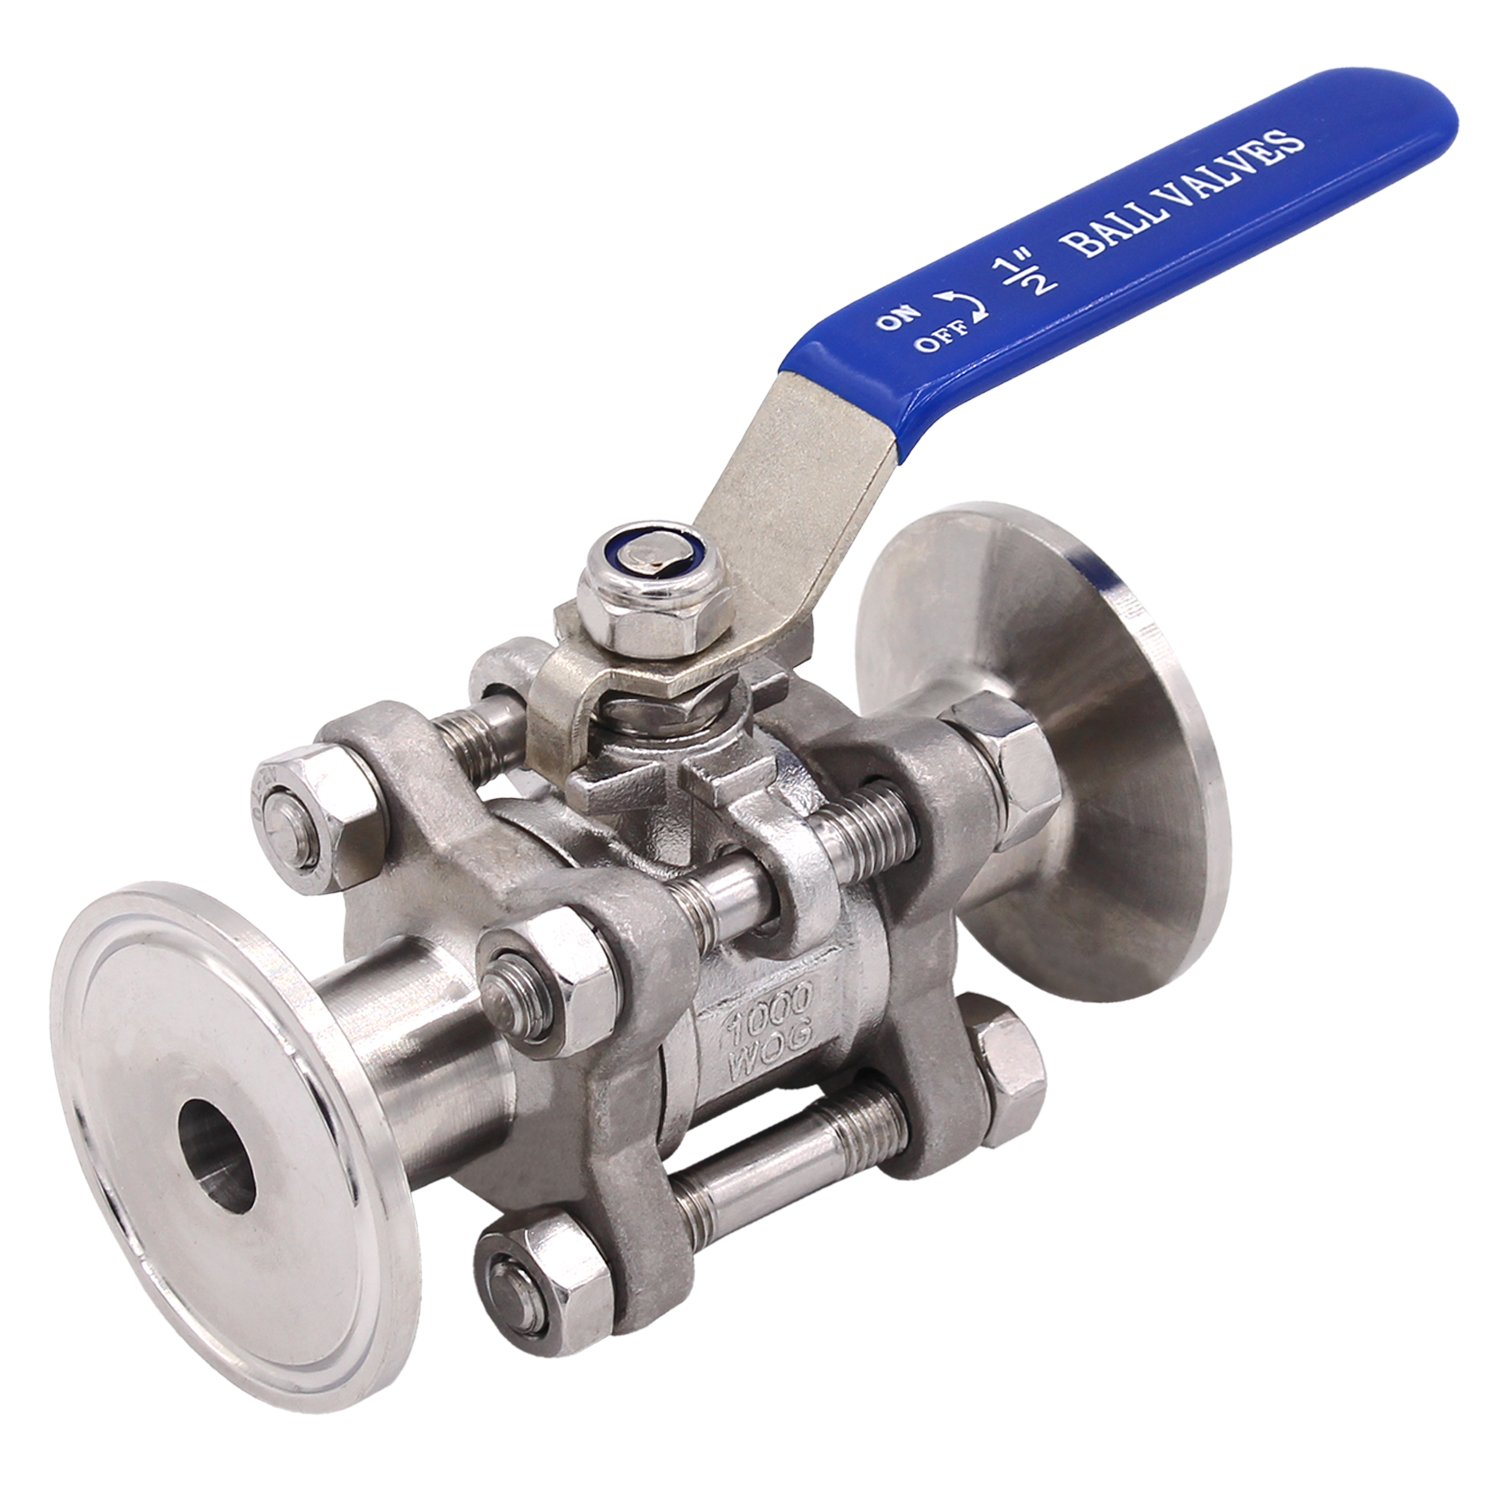 Dernord Sanitary Ball Valve Fits 1.5'' Tri-Clamp Clover Stainless Steel 304, PTFE Lined, Two Way & Three Piece (1/2 Inch Tube OD Quick Clamp)